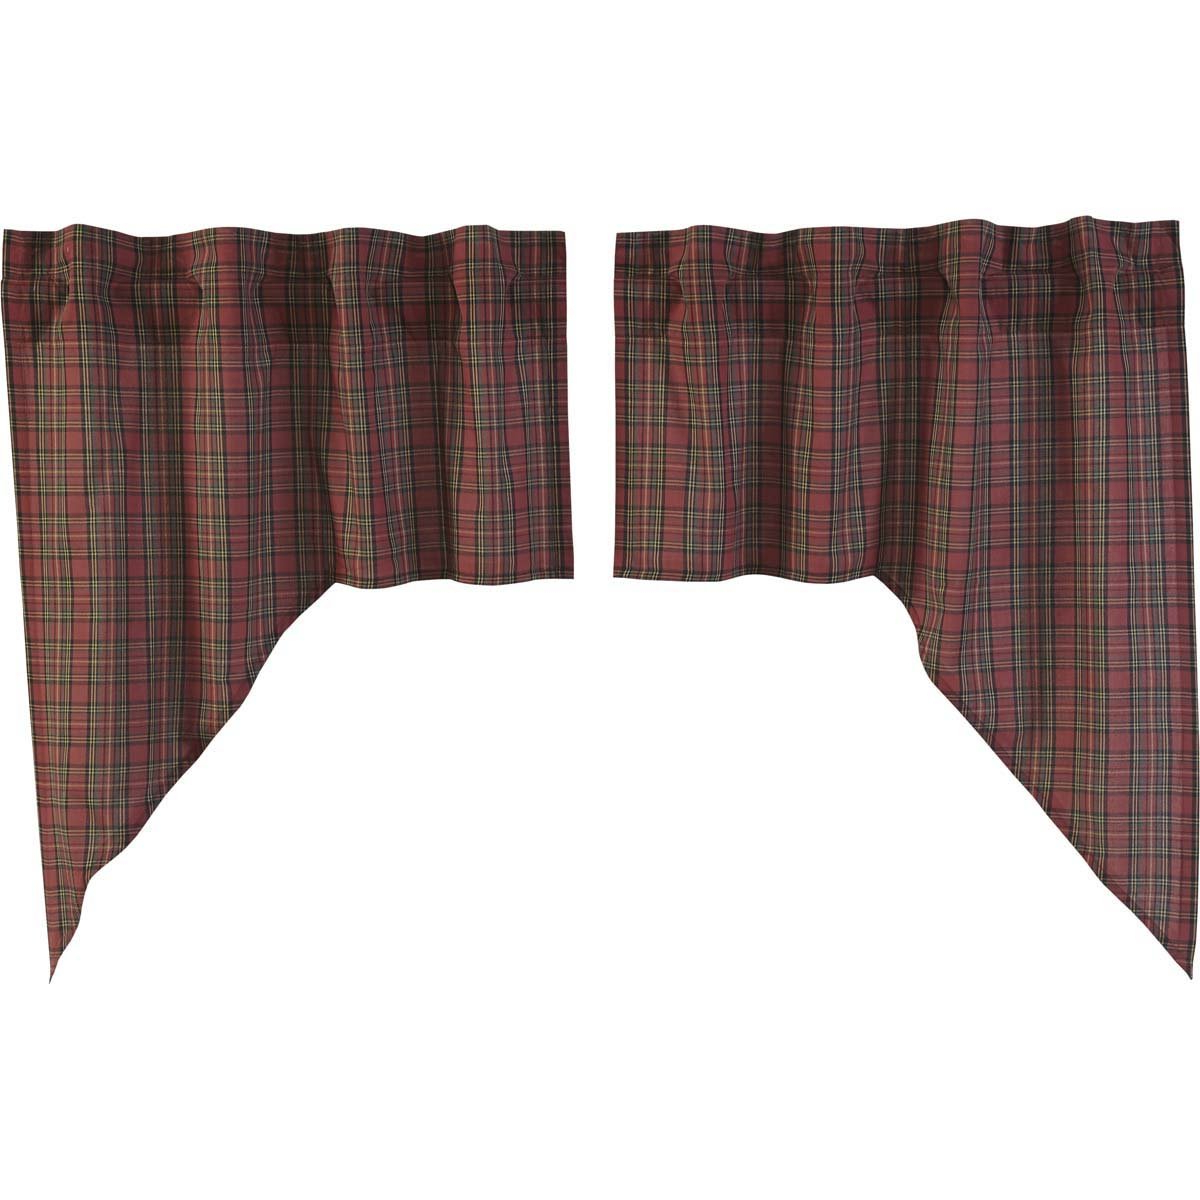 Trendy Amazon: Vhc Brands Primitive Rustic & Lodge Kitchen For Red Rustic Kitchen Curtains (View 12 of 20)